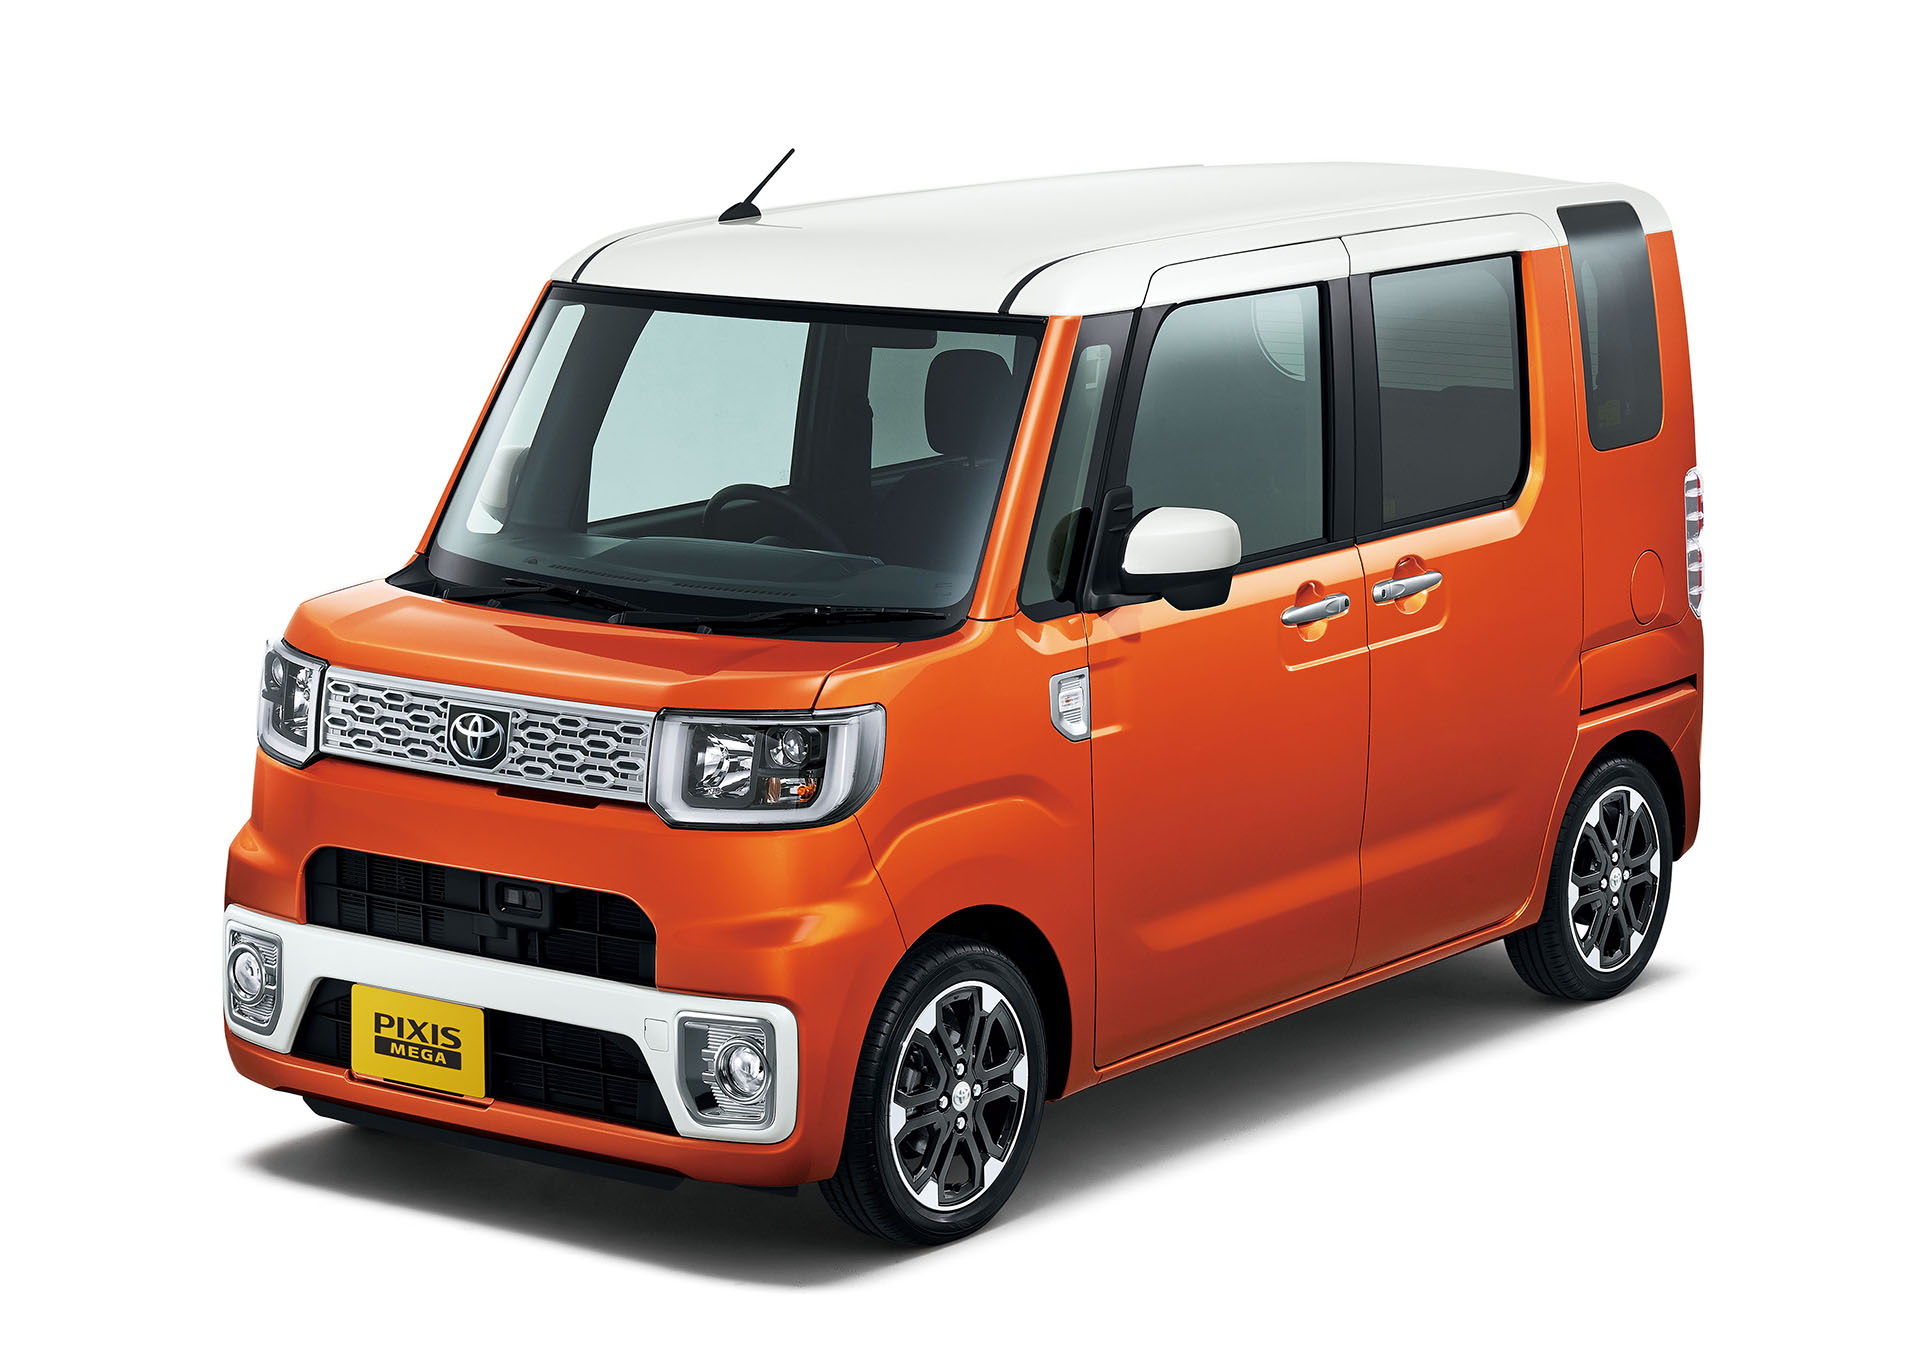 Toyota Pixis Mega Is Japan S Newest Ultra Cute Kei Car